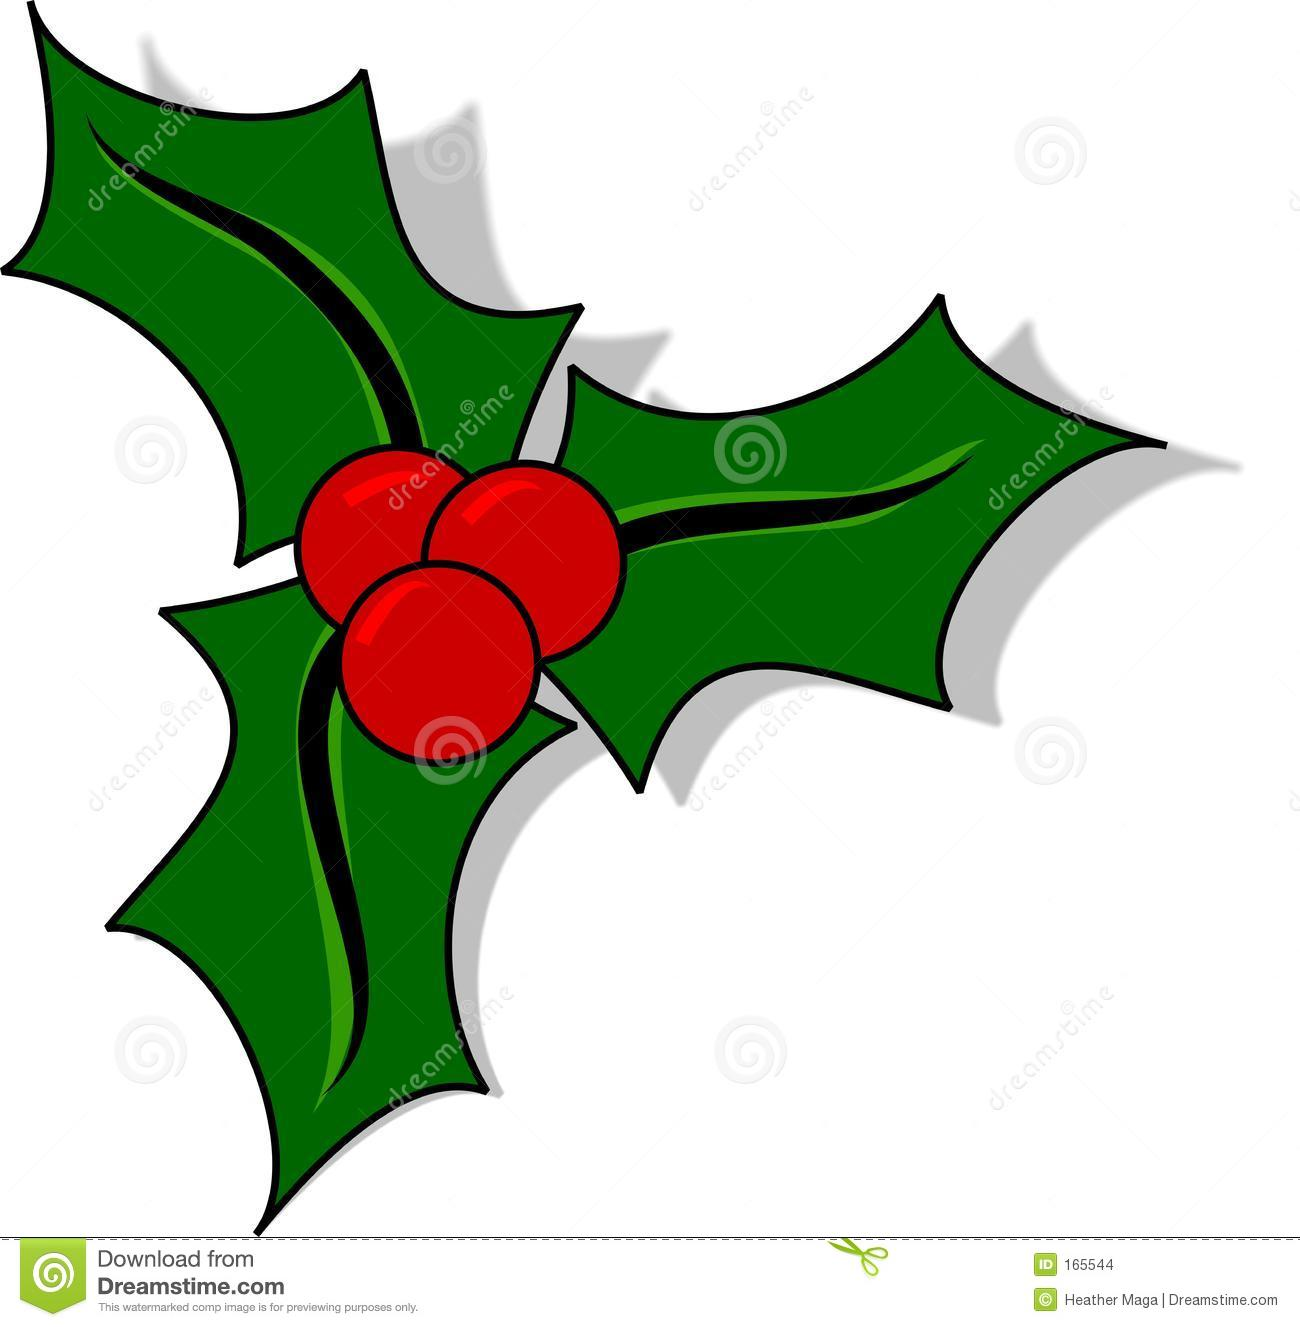 Christmas Holly Stock Images - Image: 165544